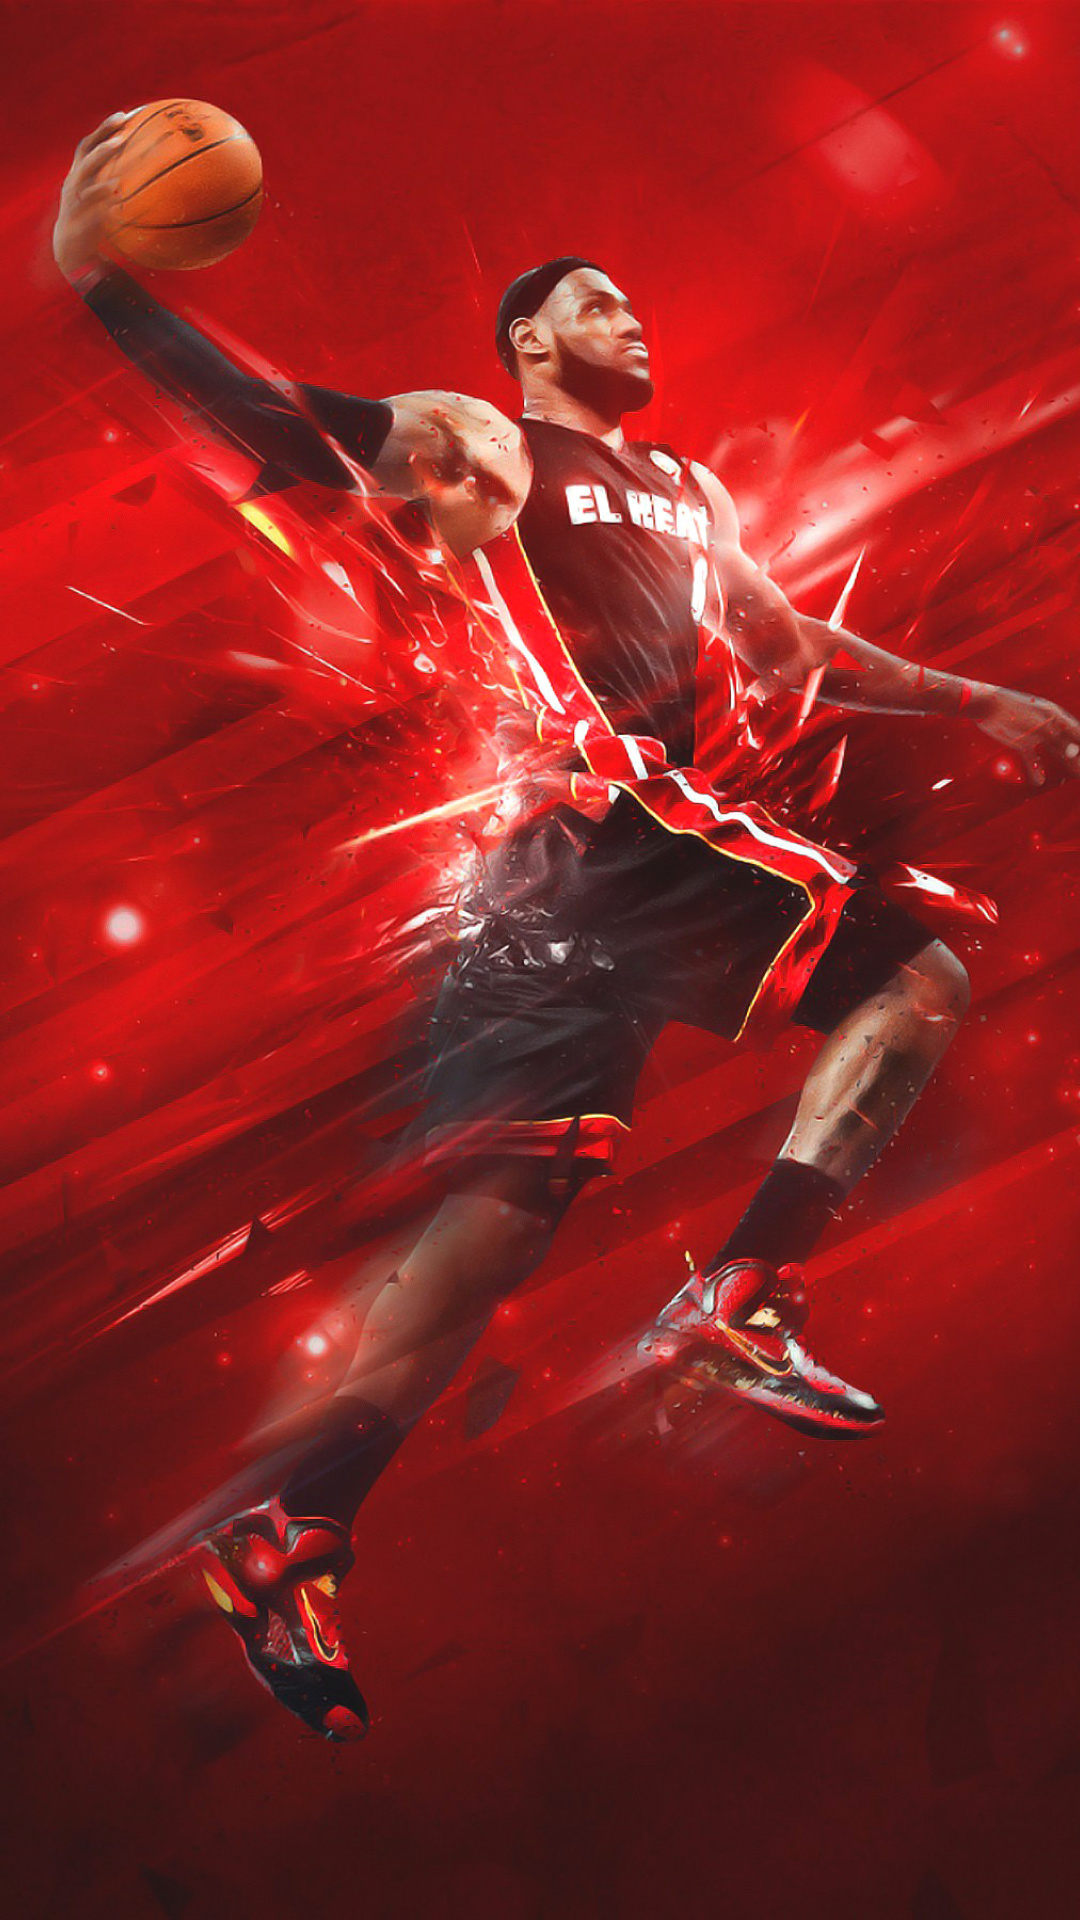 lebron james wallpaper for iphone 6 plus